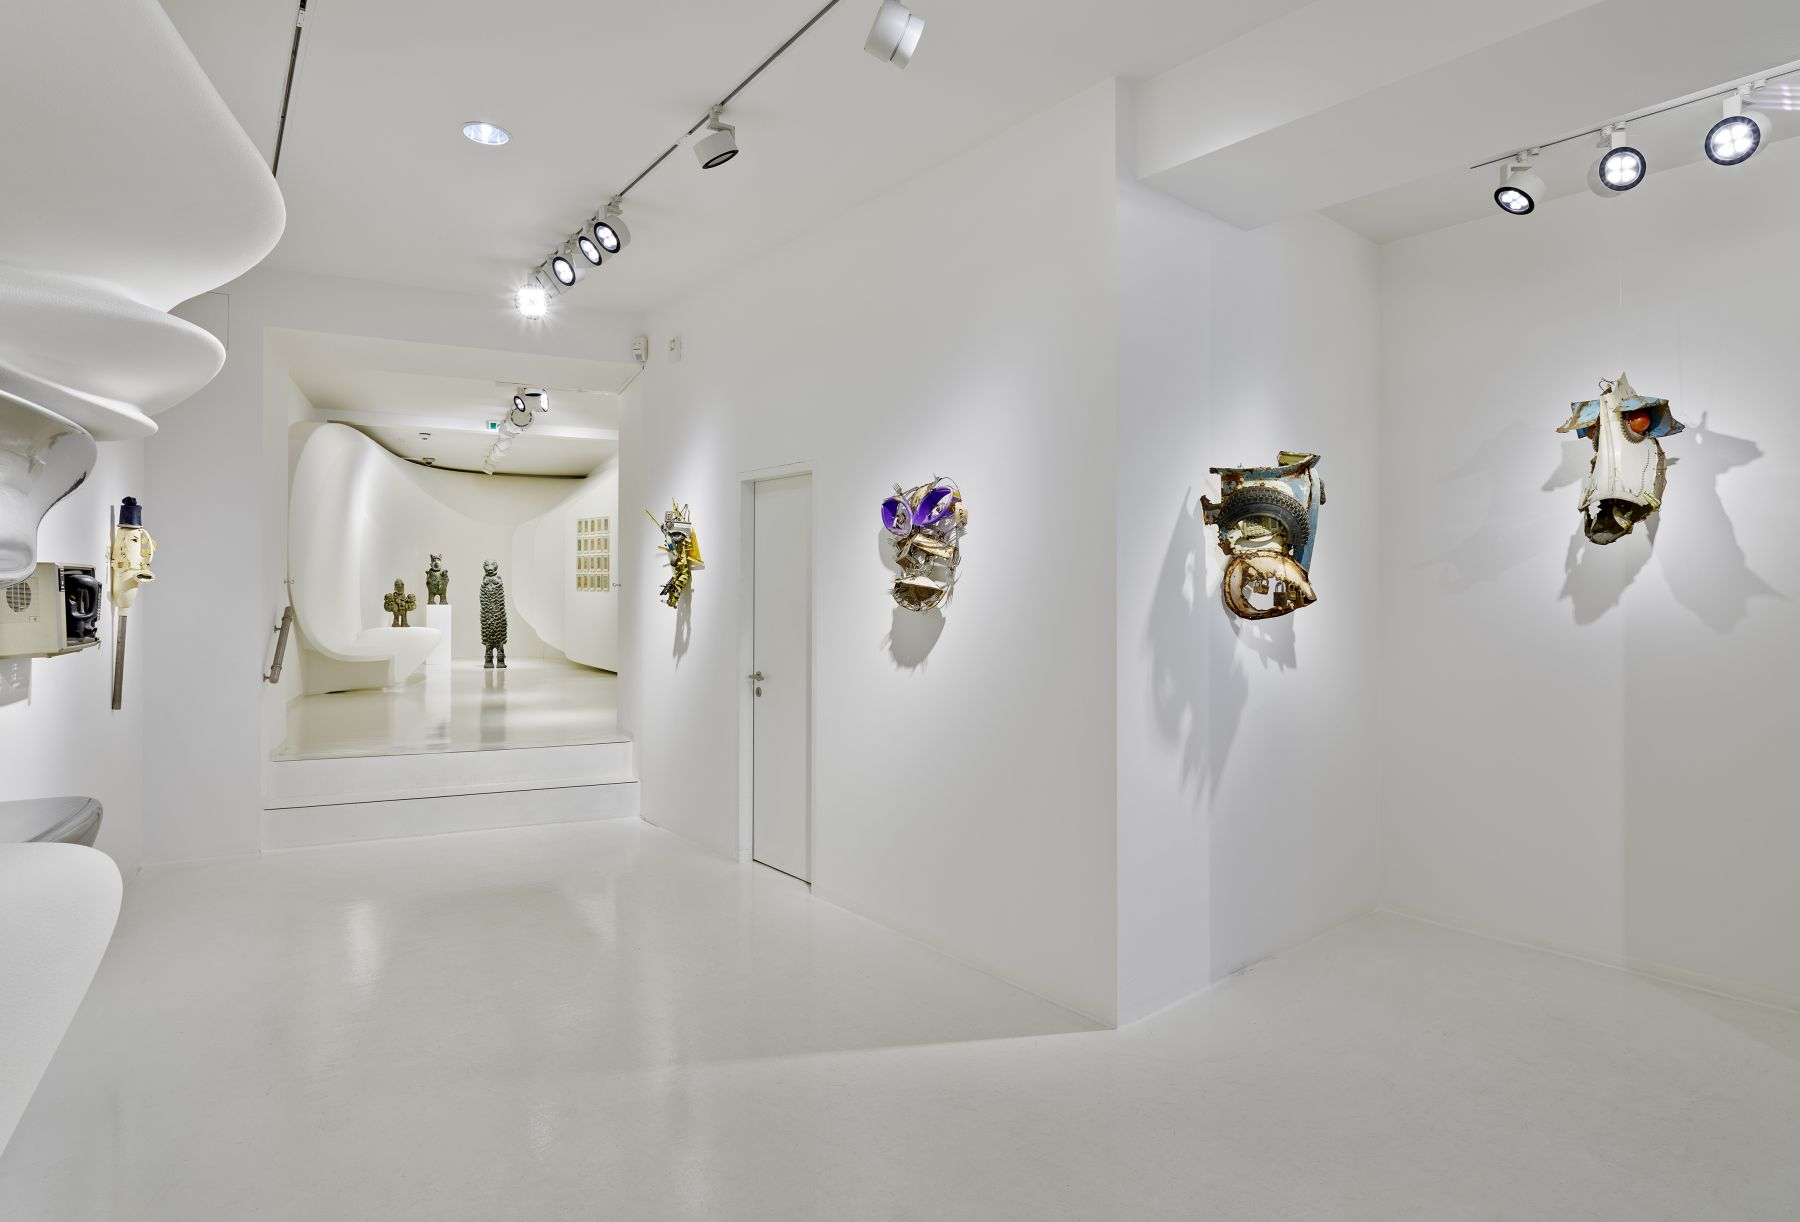 Installation View, Expressions d'Afrique/ Courtesy of Galerie Gmurzynska